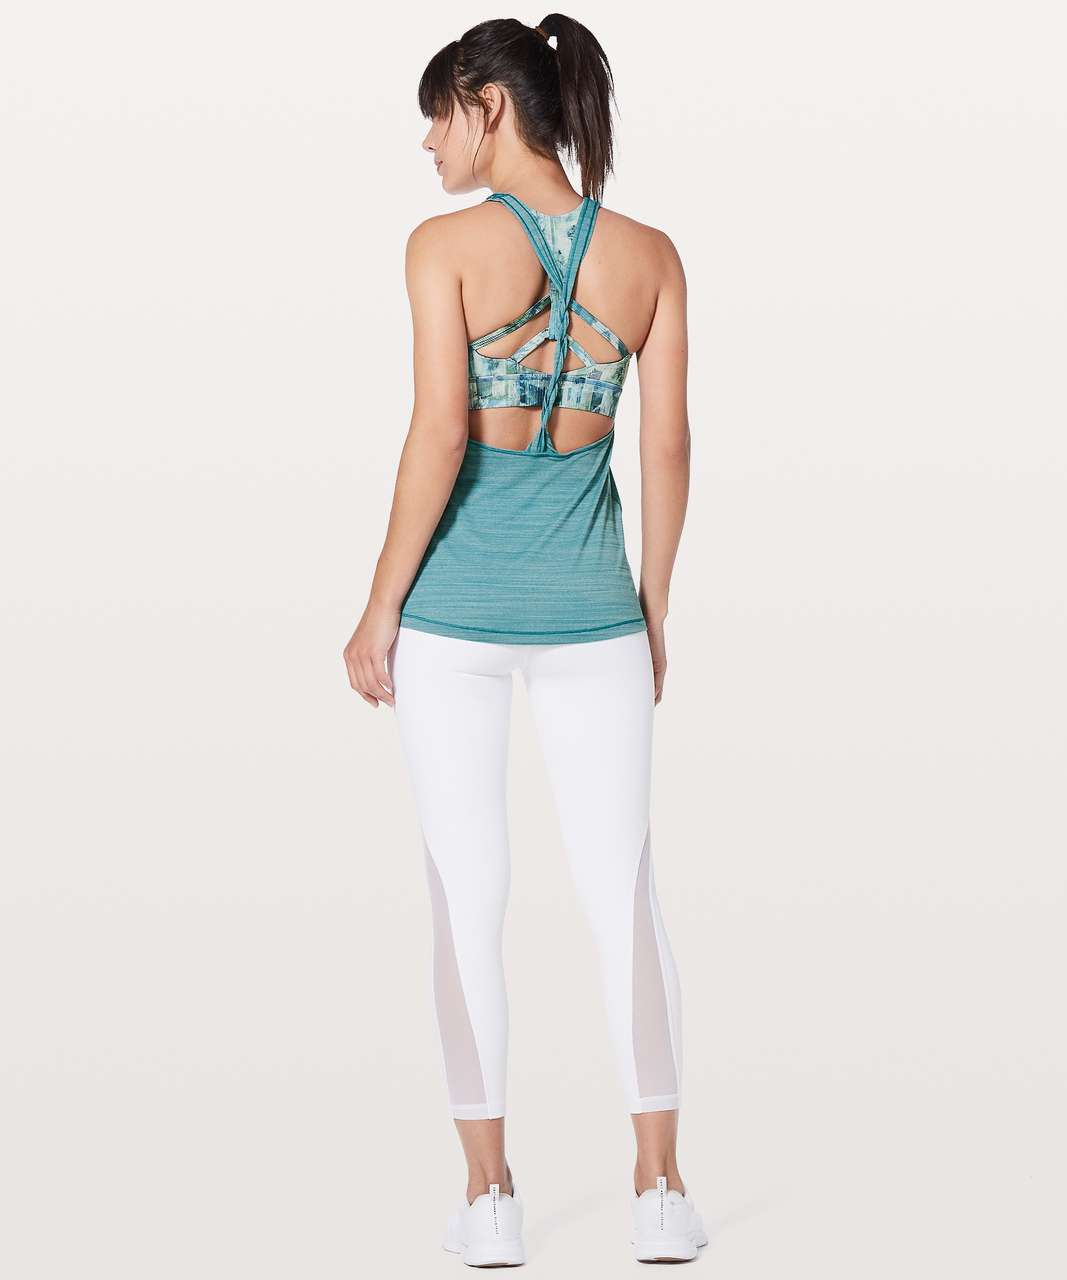 Lululemon Twist & Toil Tank - Heathered Teal Blue / Sun Dazed Multi Blue